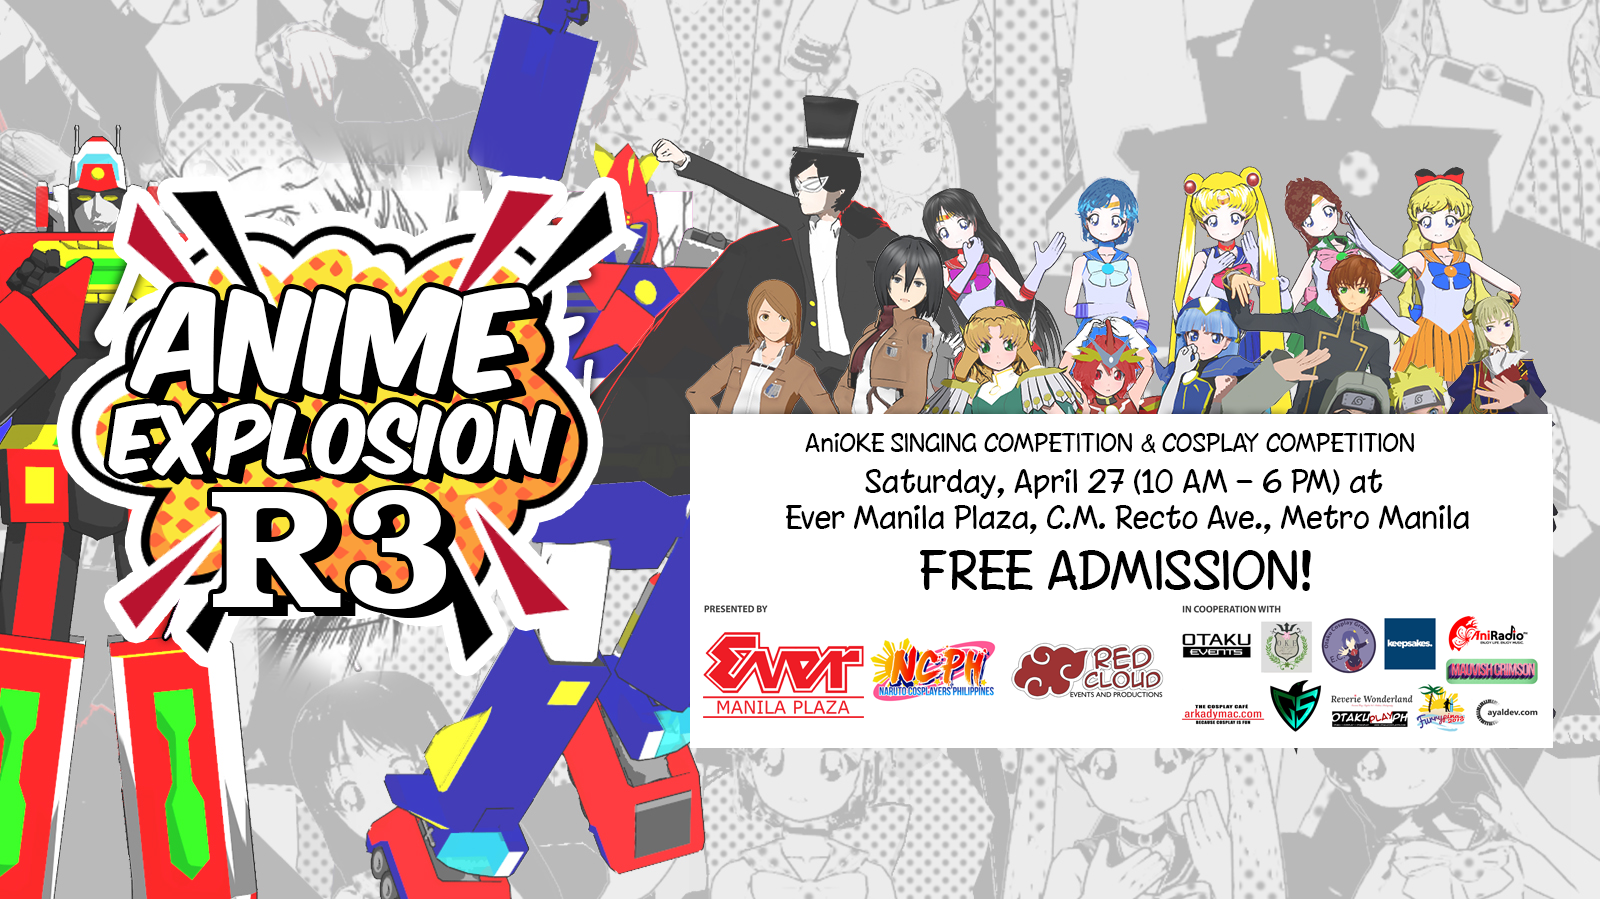 Anime explosion reborn r3 is the 3rd season of an event inspired by the early rise of conventions and anime fandom in the philippines during the 90s